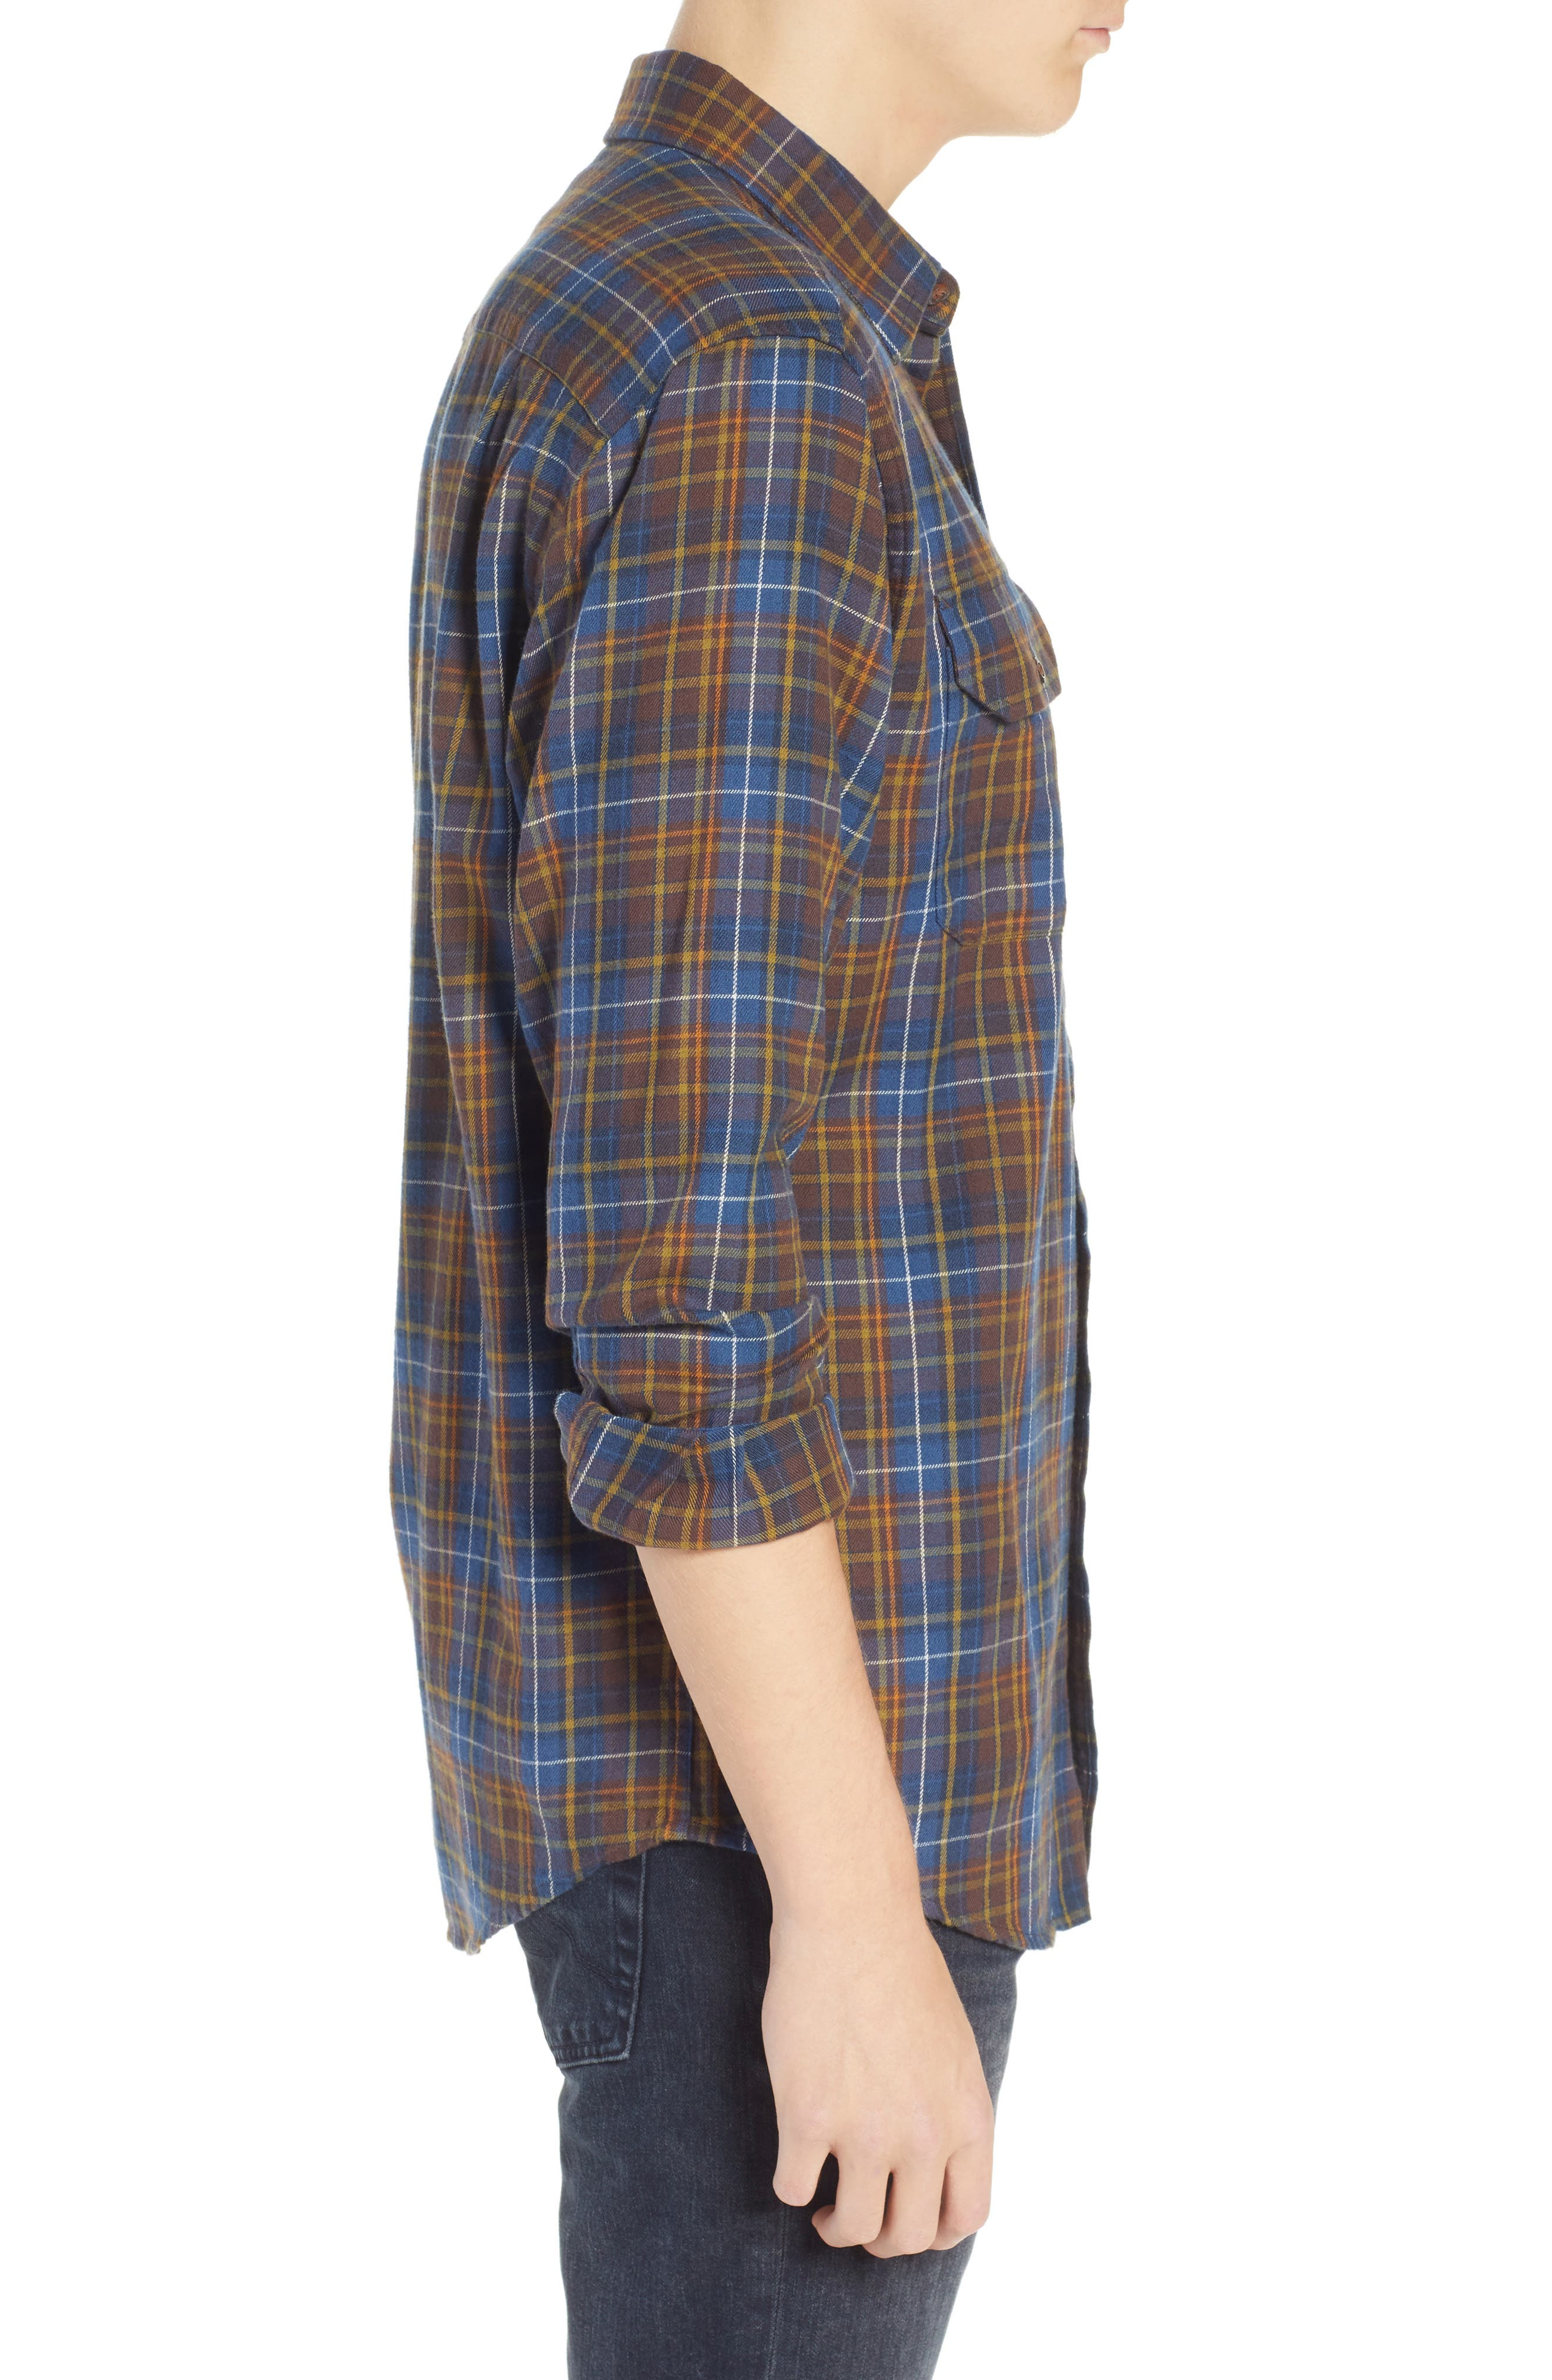 Bridger Plaid Twill Shirt,                             Alternate thumbnail 4, color,                             BLUE/ BROWN/ GREEN PLAID